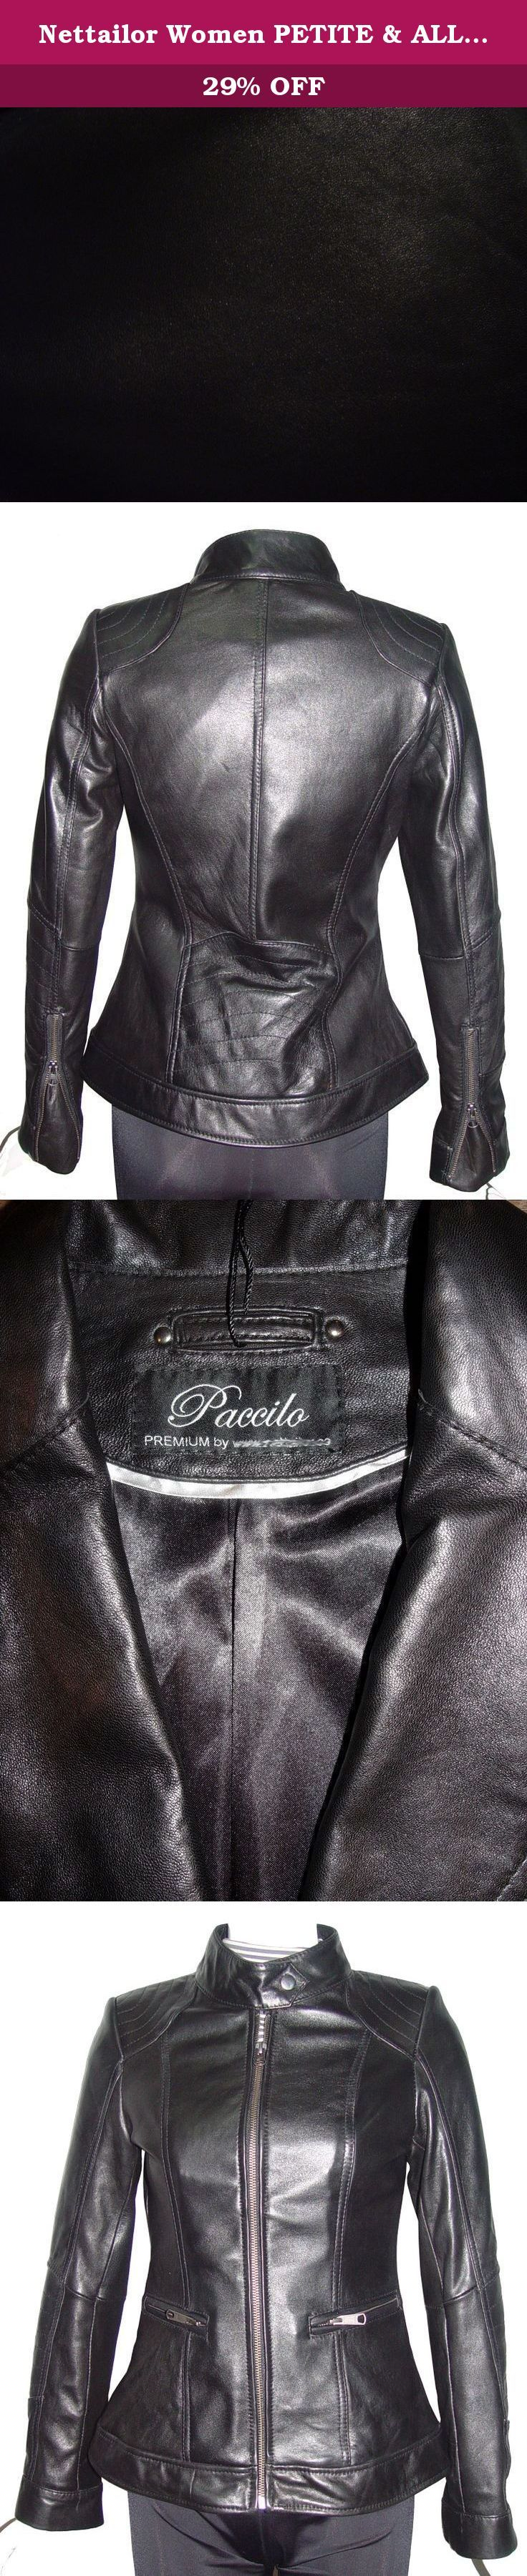 """Nettailor Women PETITE & ALL SIZE Fashion 4156 Leather Motorcycle Jacket. Lambskin, Stand Up Collar, Zip Front, No Insulation. Not all leather is the same. When vendors say or state, """"leather or genuine leather"""", they generally use """"pig skin"""", which is the worst quality of leather and therefore inexpensive. If you choose to buy """"leather or genuine leather"""" only because of its cheap price, you will mostly end up buying """"pig skin"""" leather ($50-$150 price range). Lambskin, pigskin and…"""